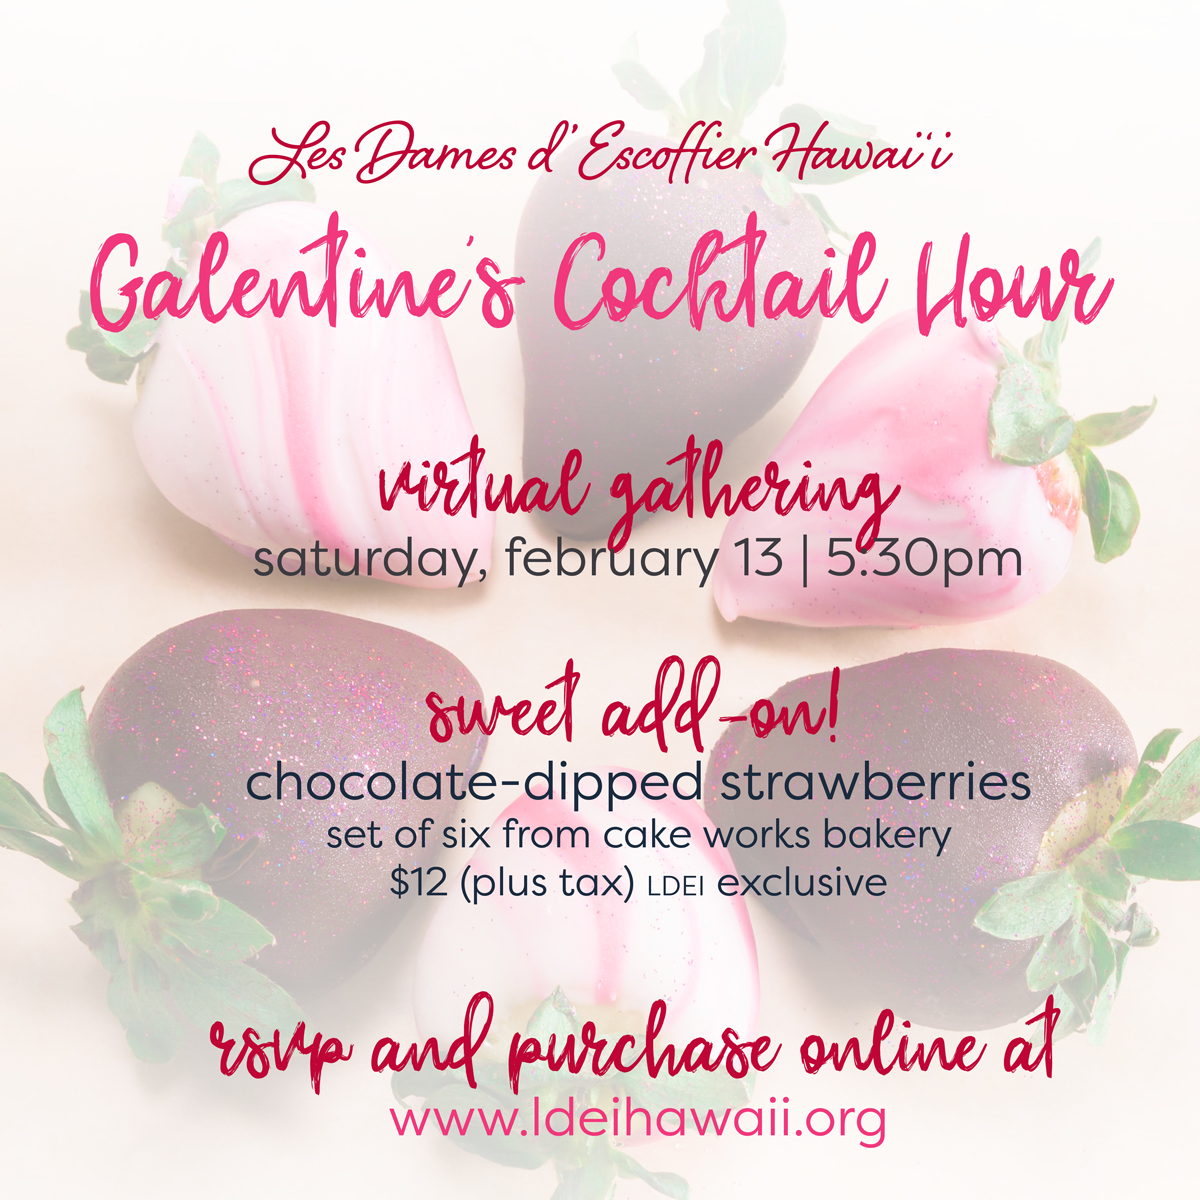 Galentines_SocialImages2